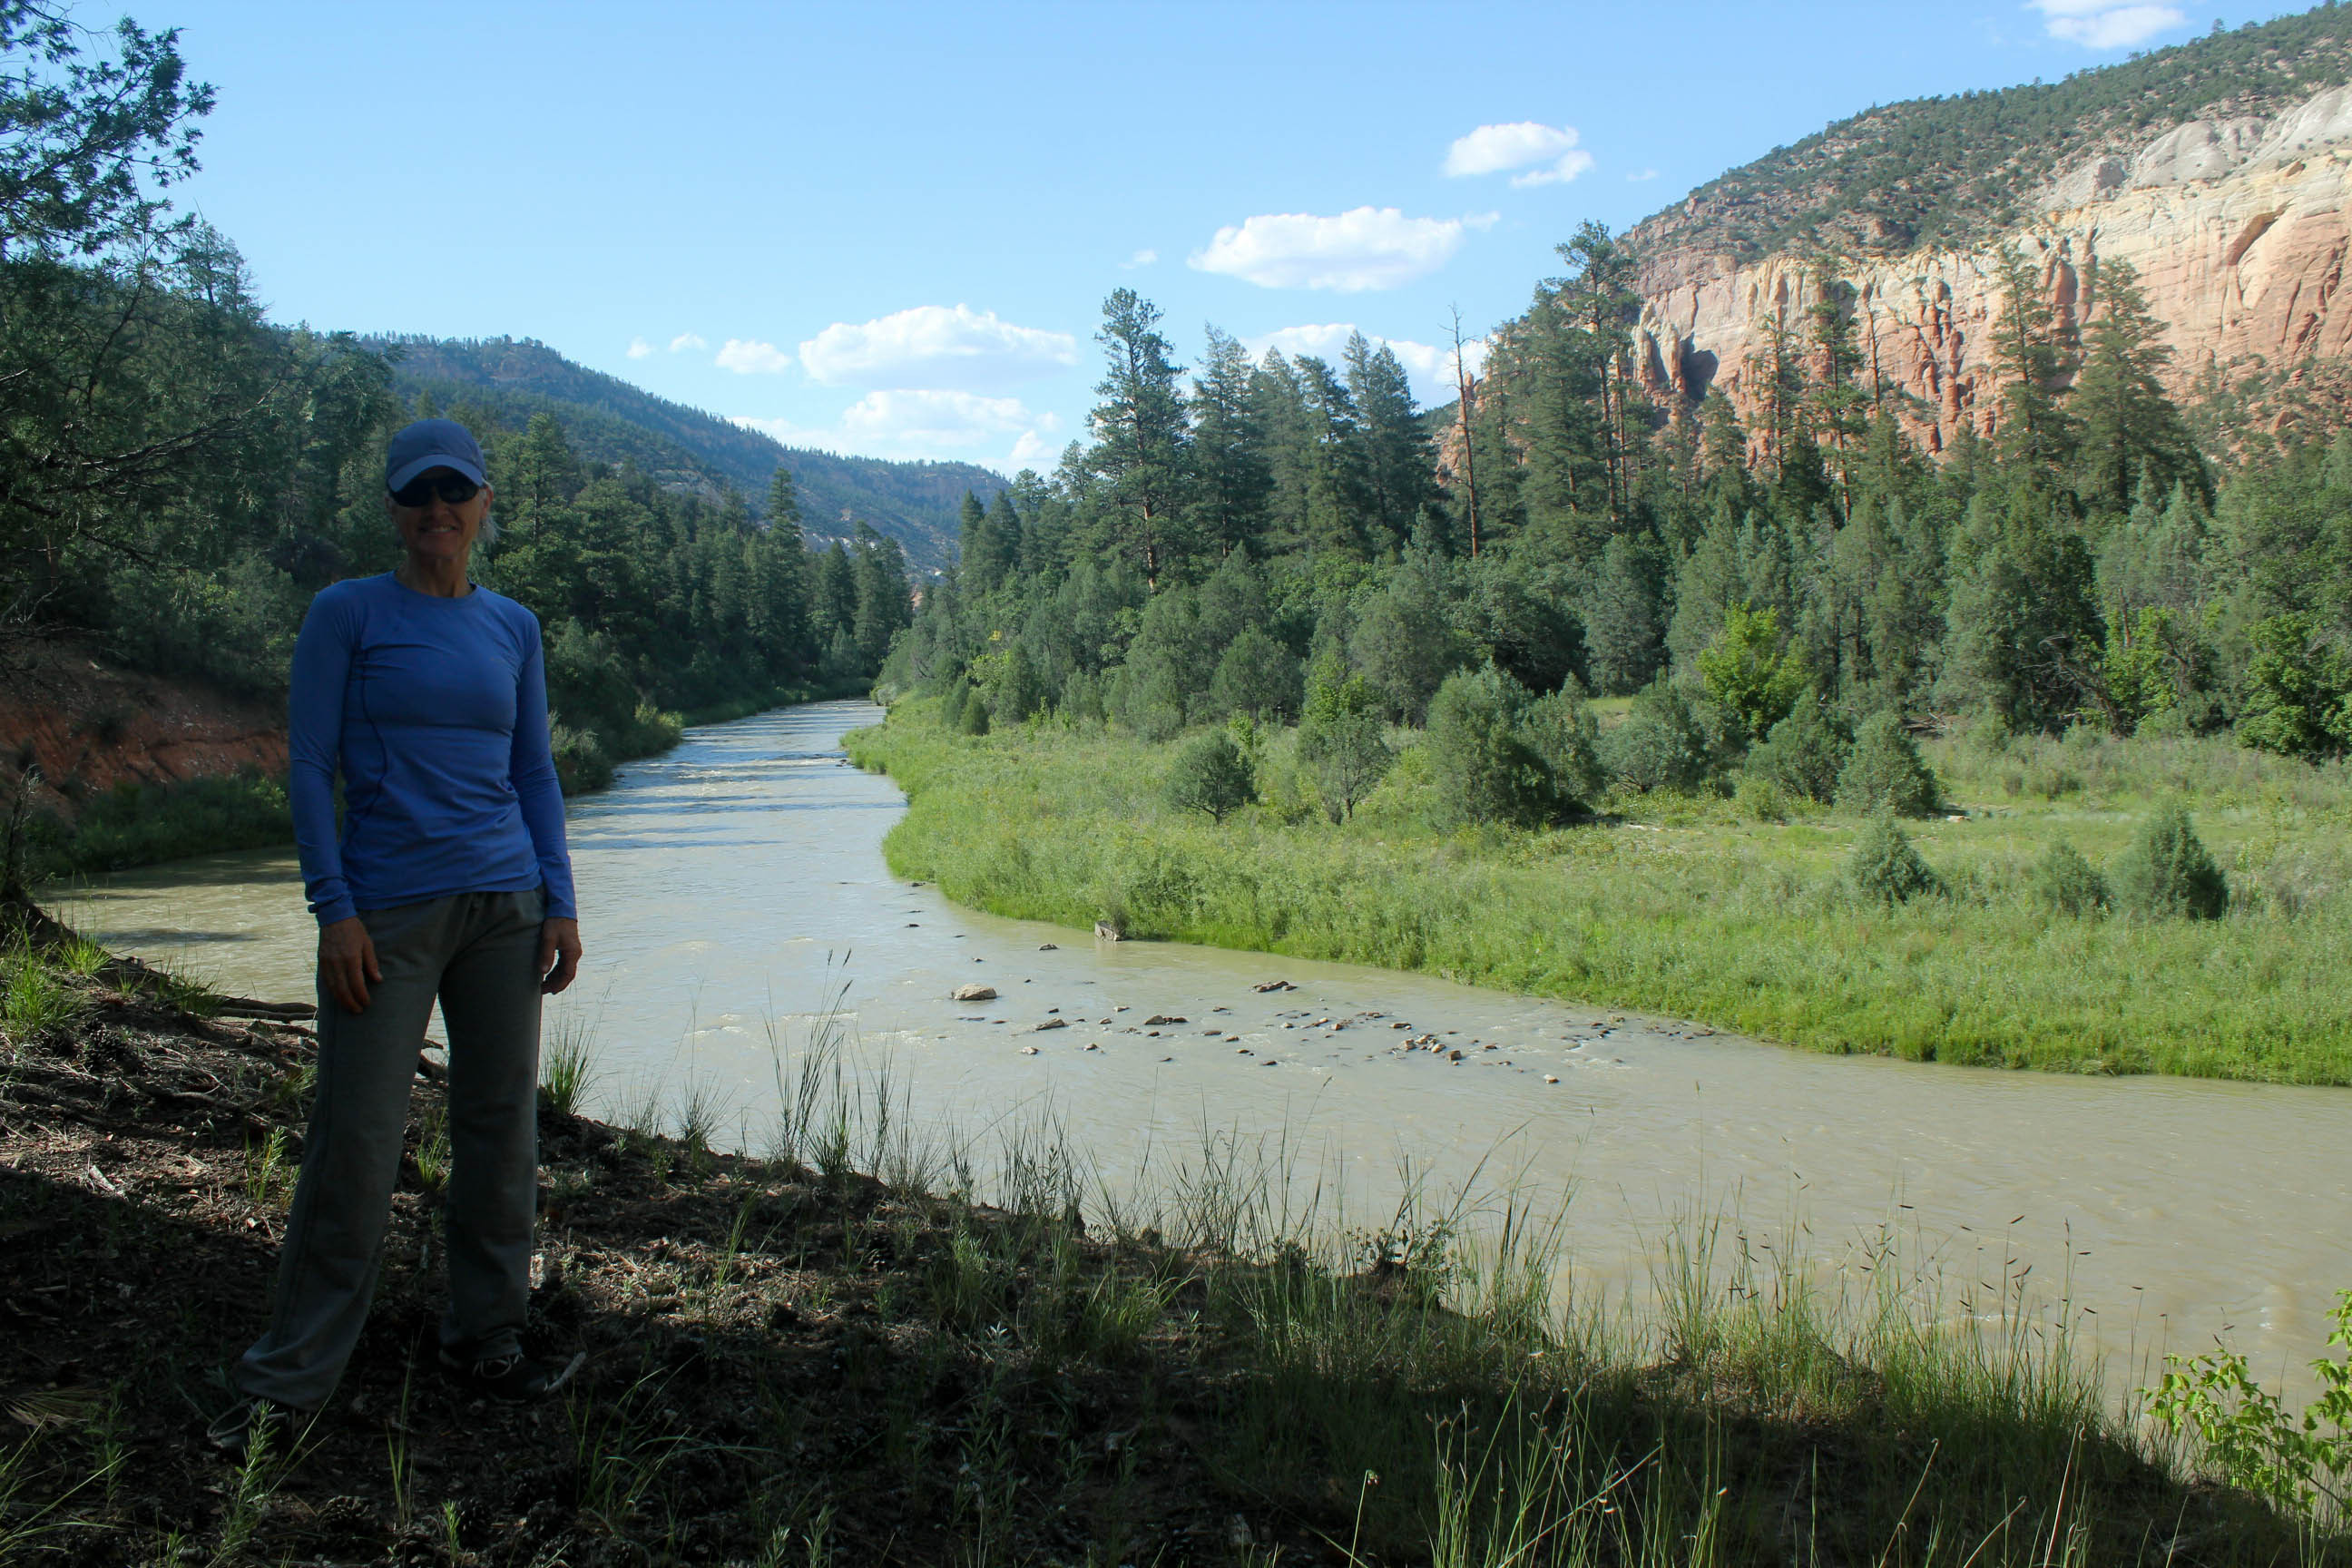 Author Cynthia Lee Cartier standing above the Rio Chama River